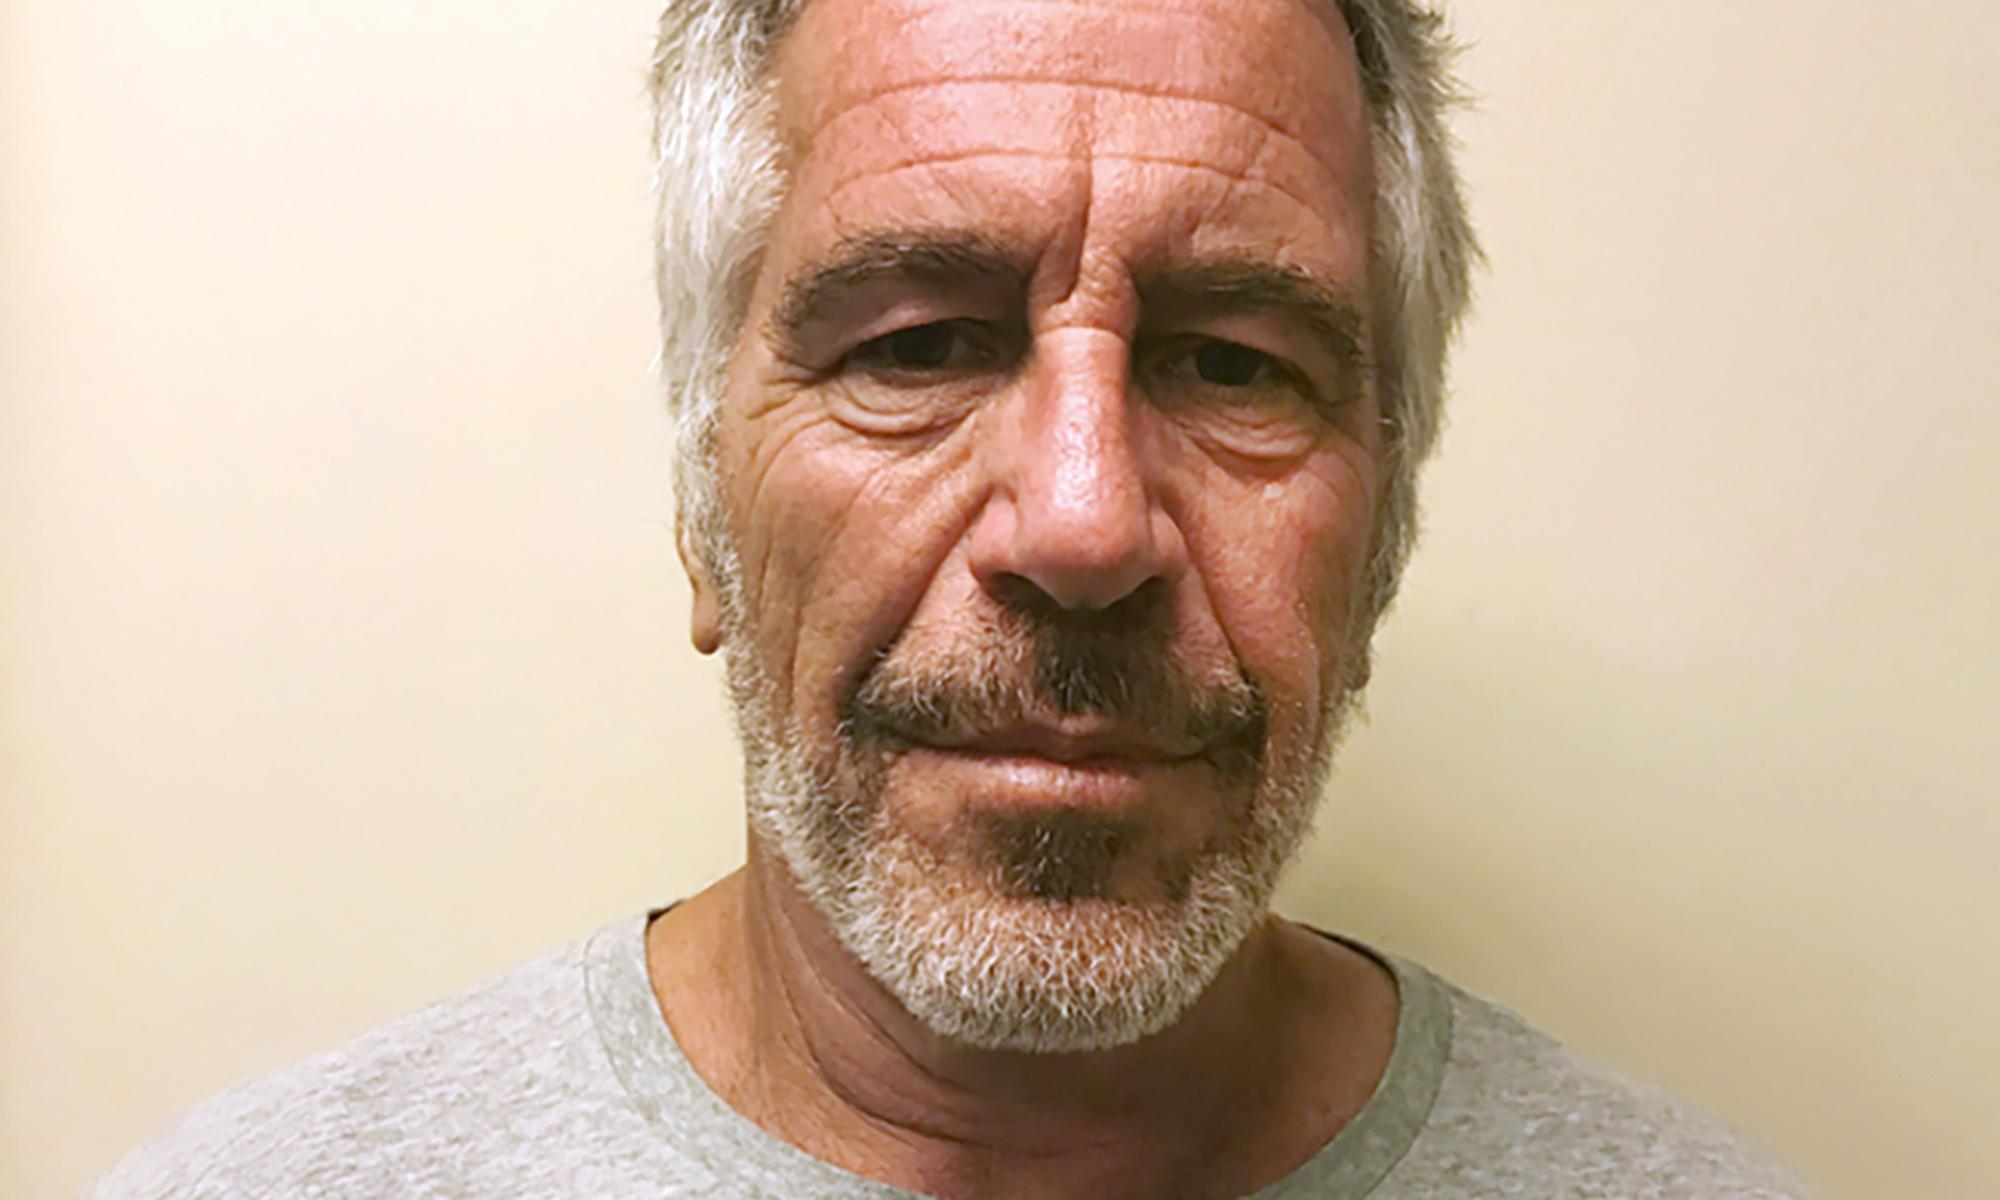 The Epstein scandal at MIT shows the moral bankruptcy of techno-elites